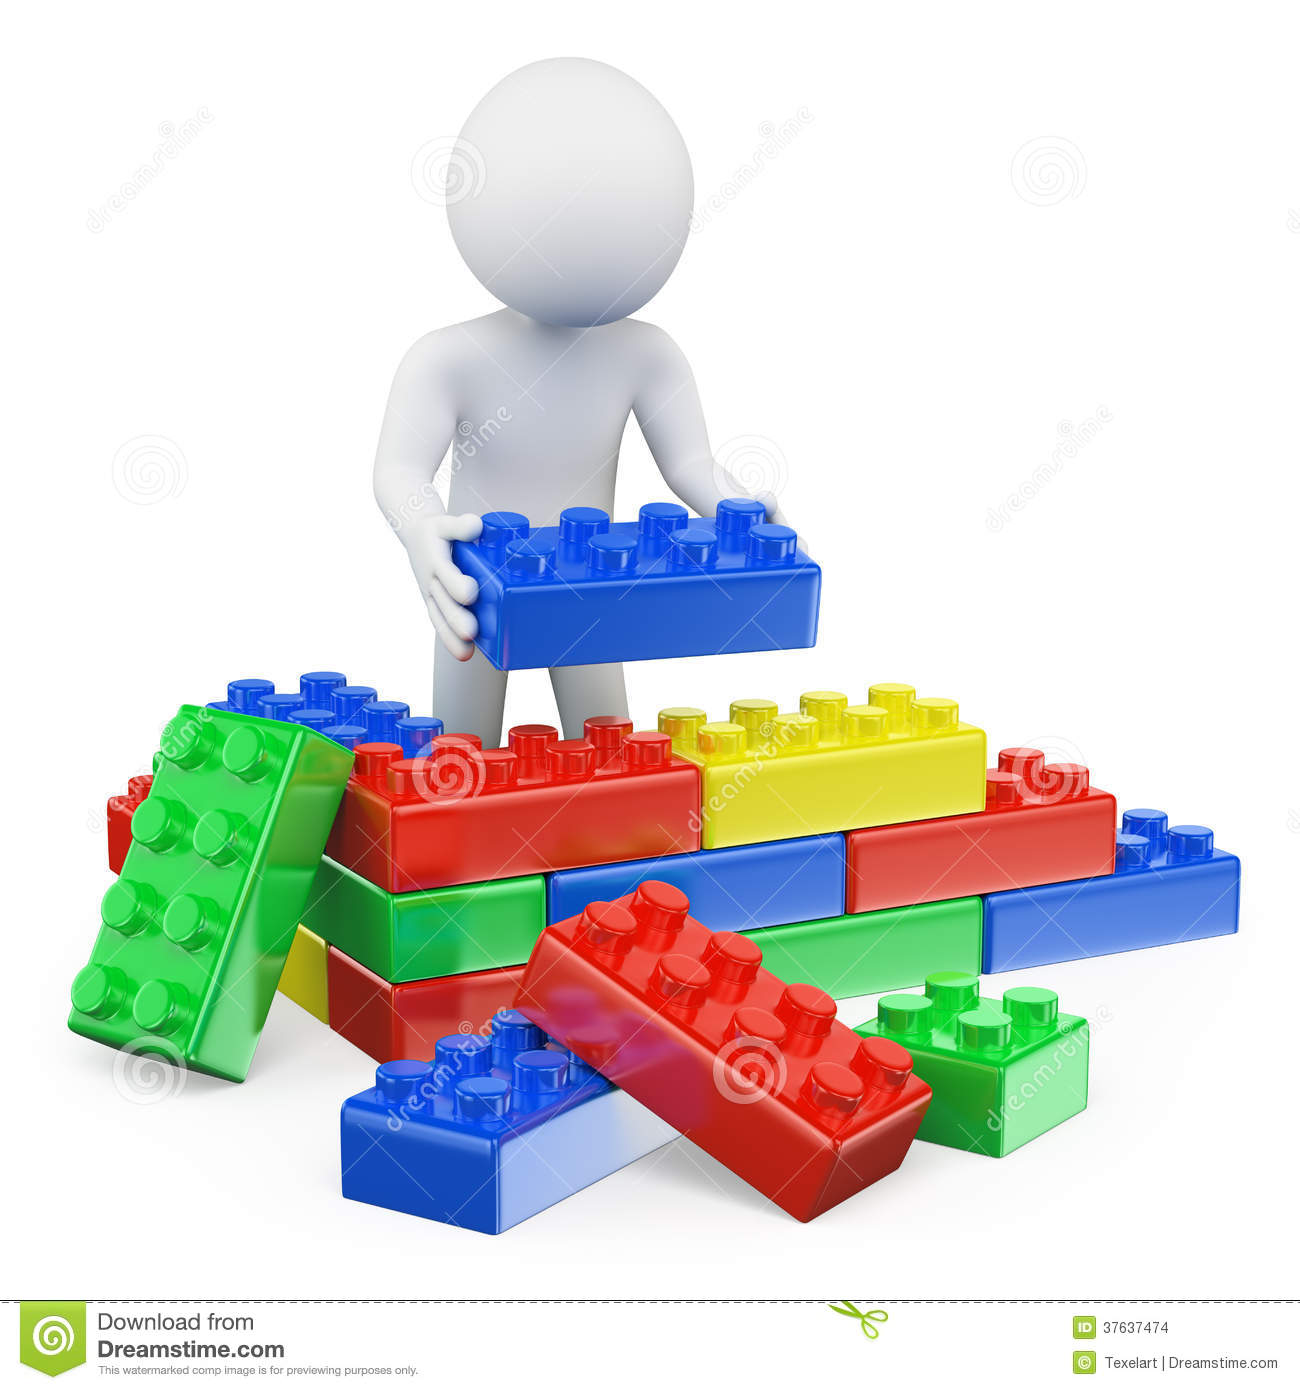 ... . Man building a house with plastic toy blocks. White background